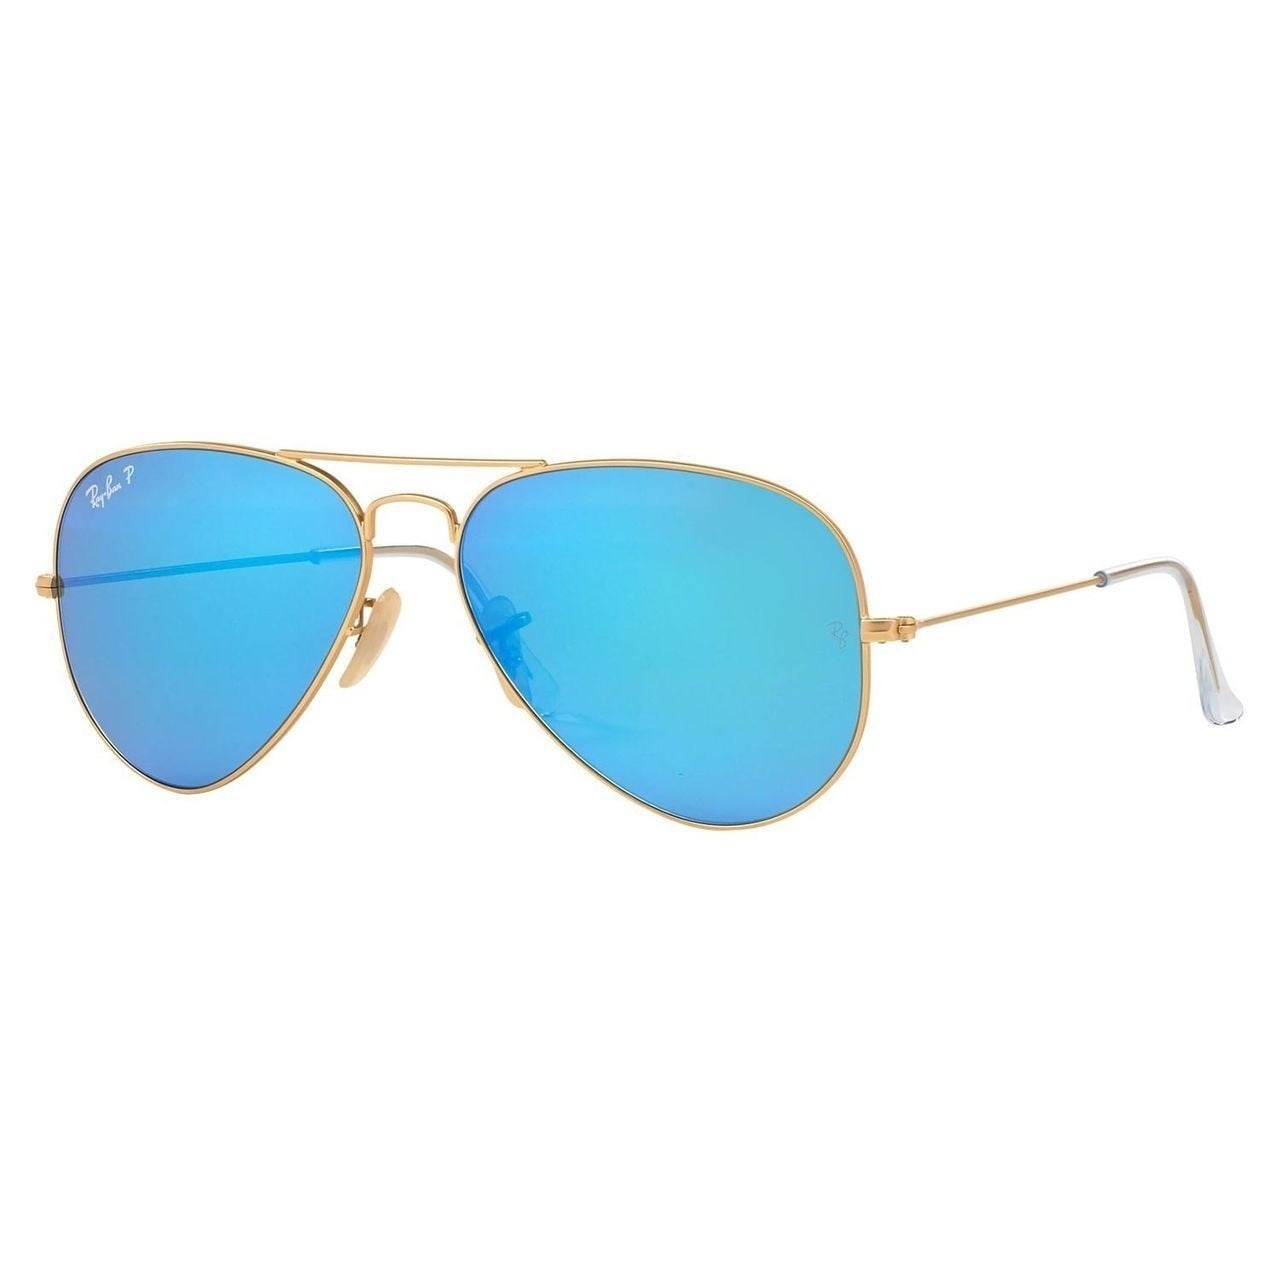 979bf2c3b5f Shop Ray-Ban Aviator RB3025 Unisex Gold Frame Blue Flash Polarized Lens  Sunglasses - Free Shipping Today - Overstock - 9394181